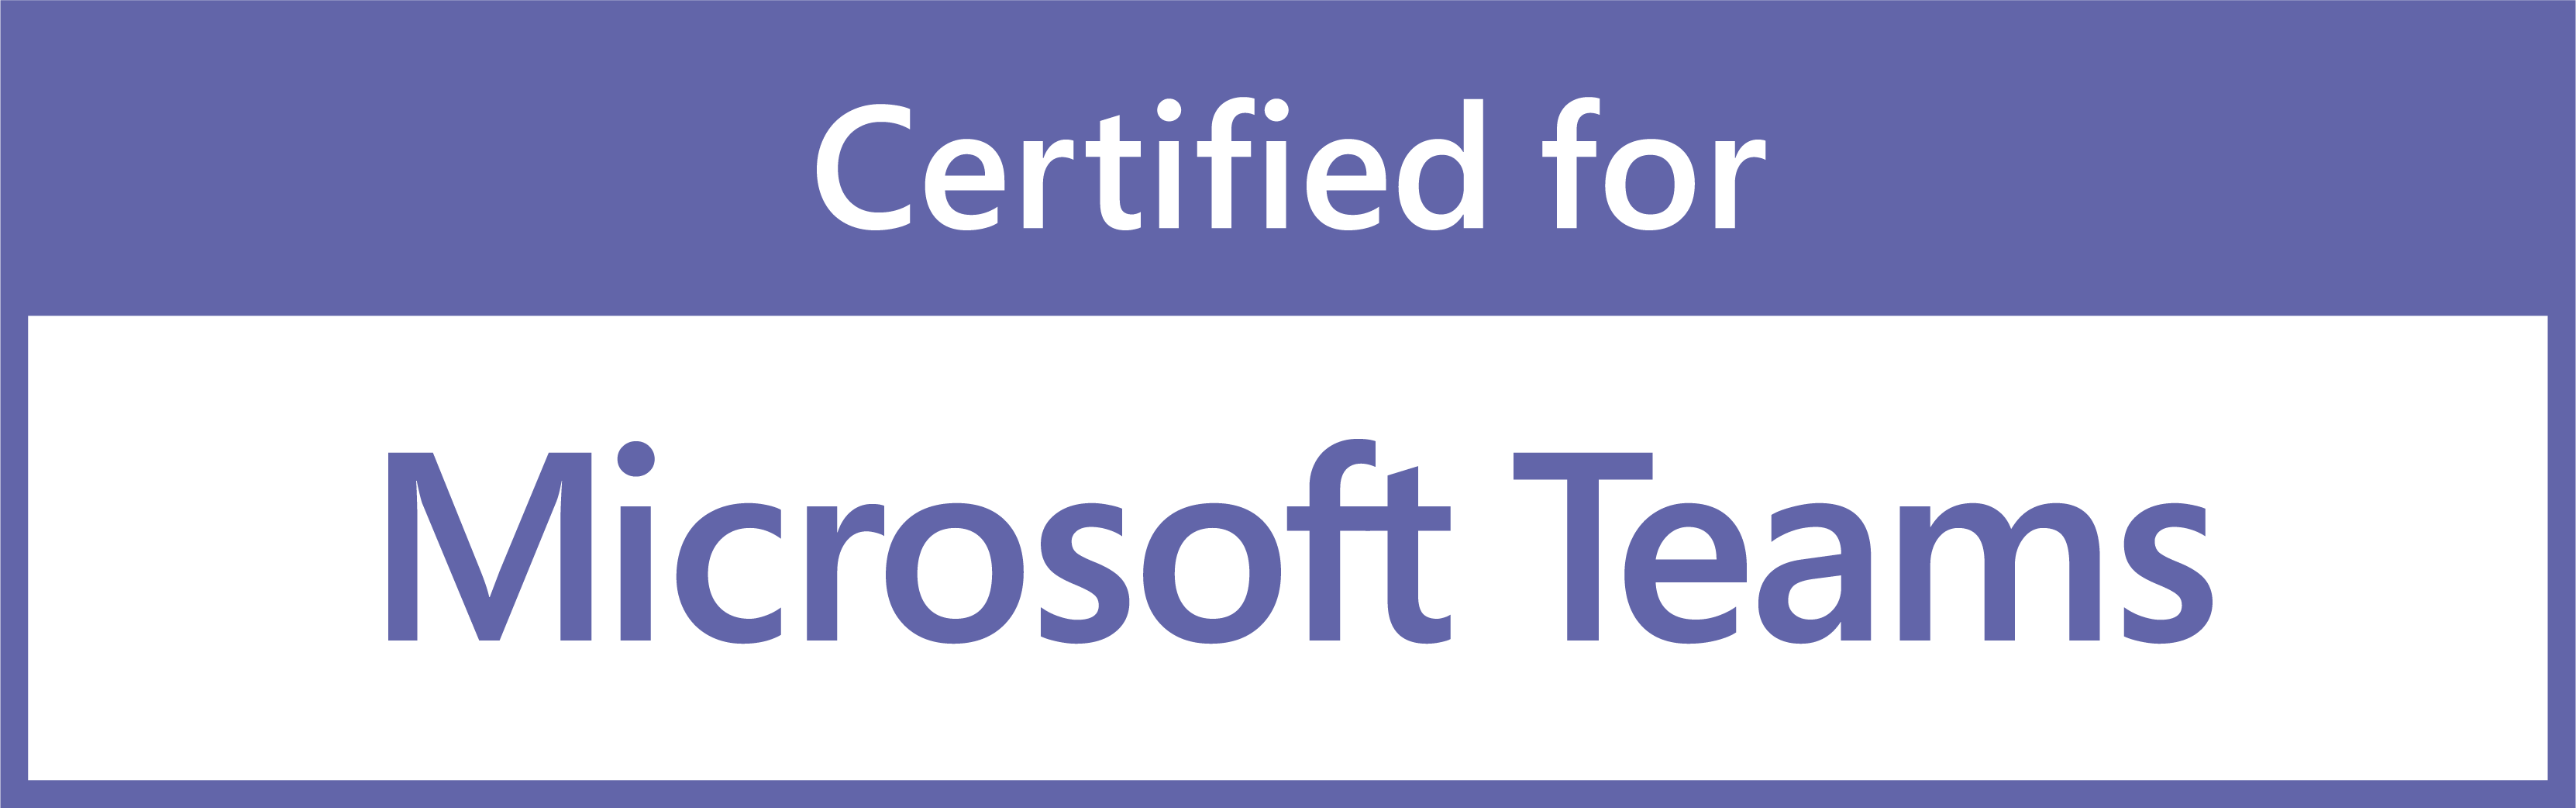 Sertified for Microsoft Teams